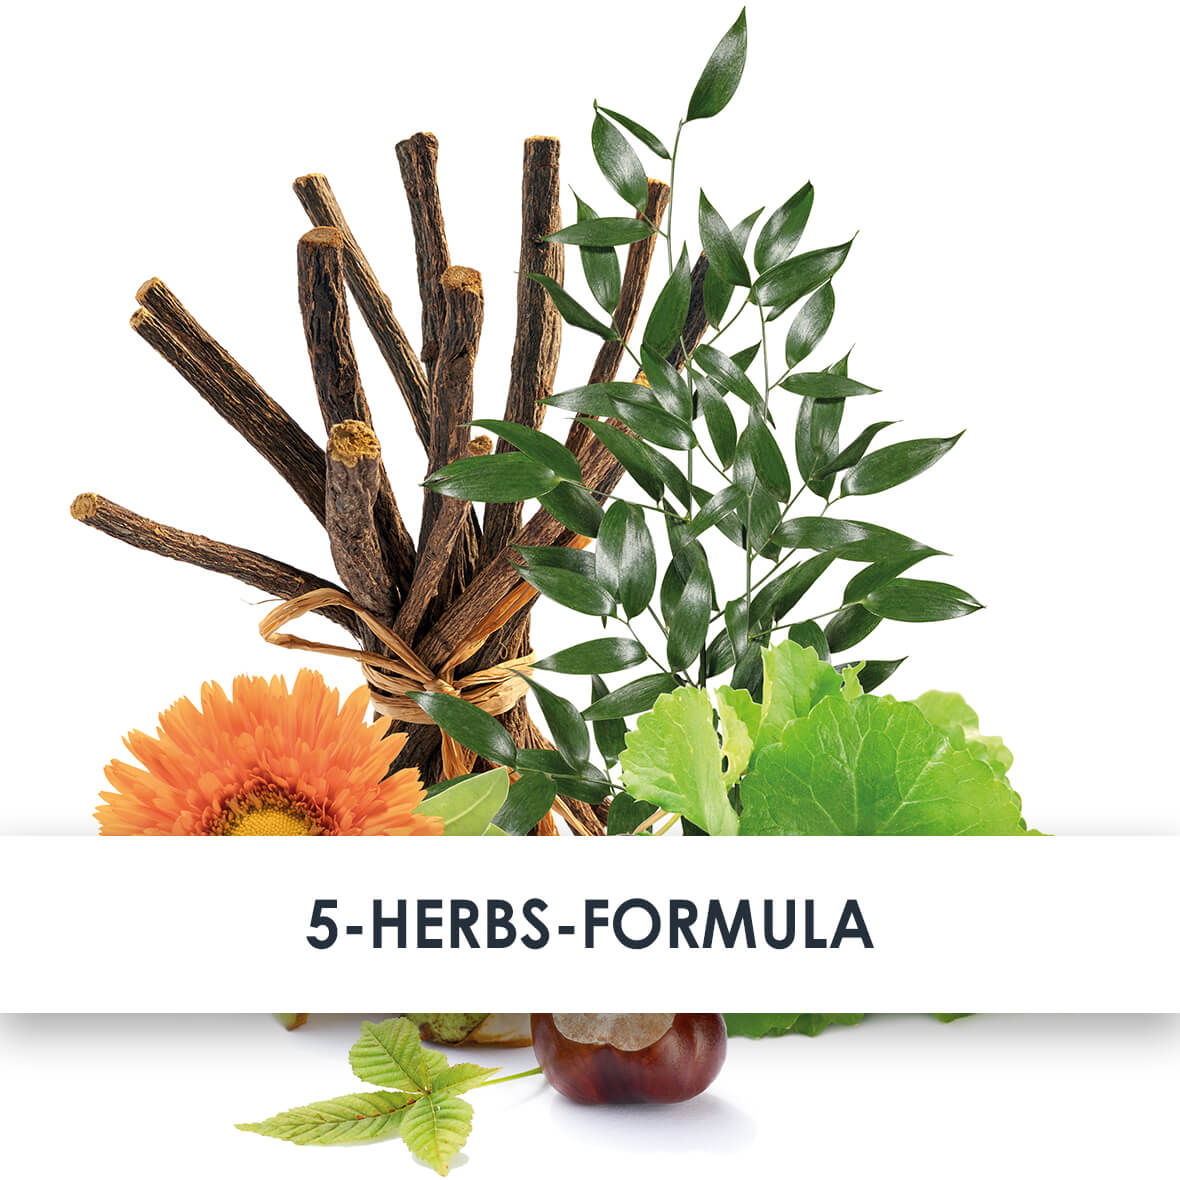 5-Herbs-Formula Active Ingredients